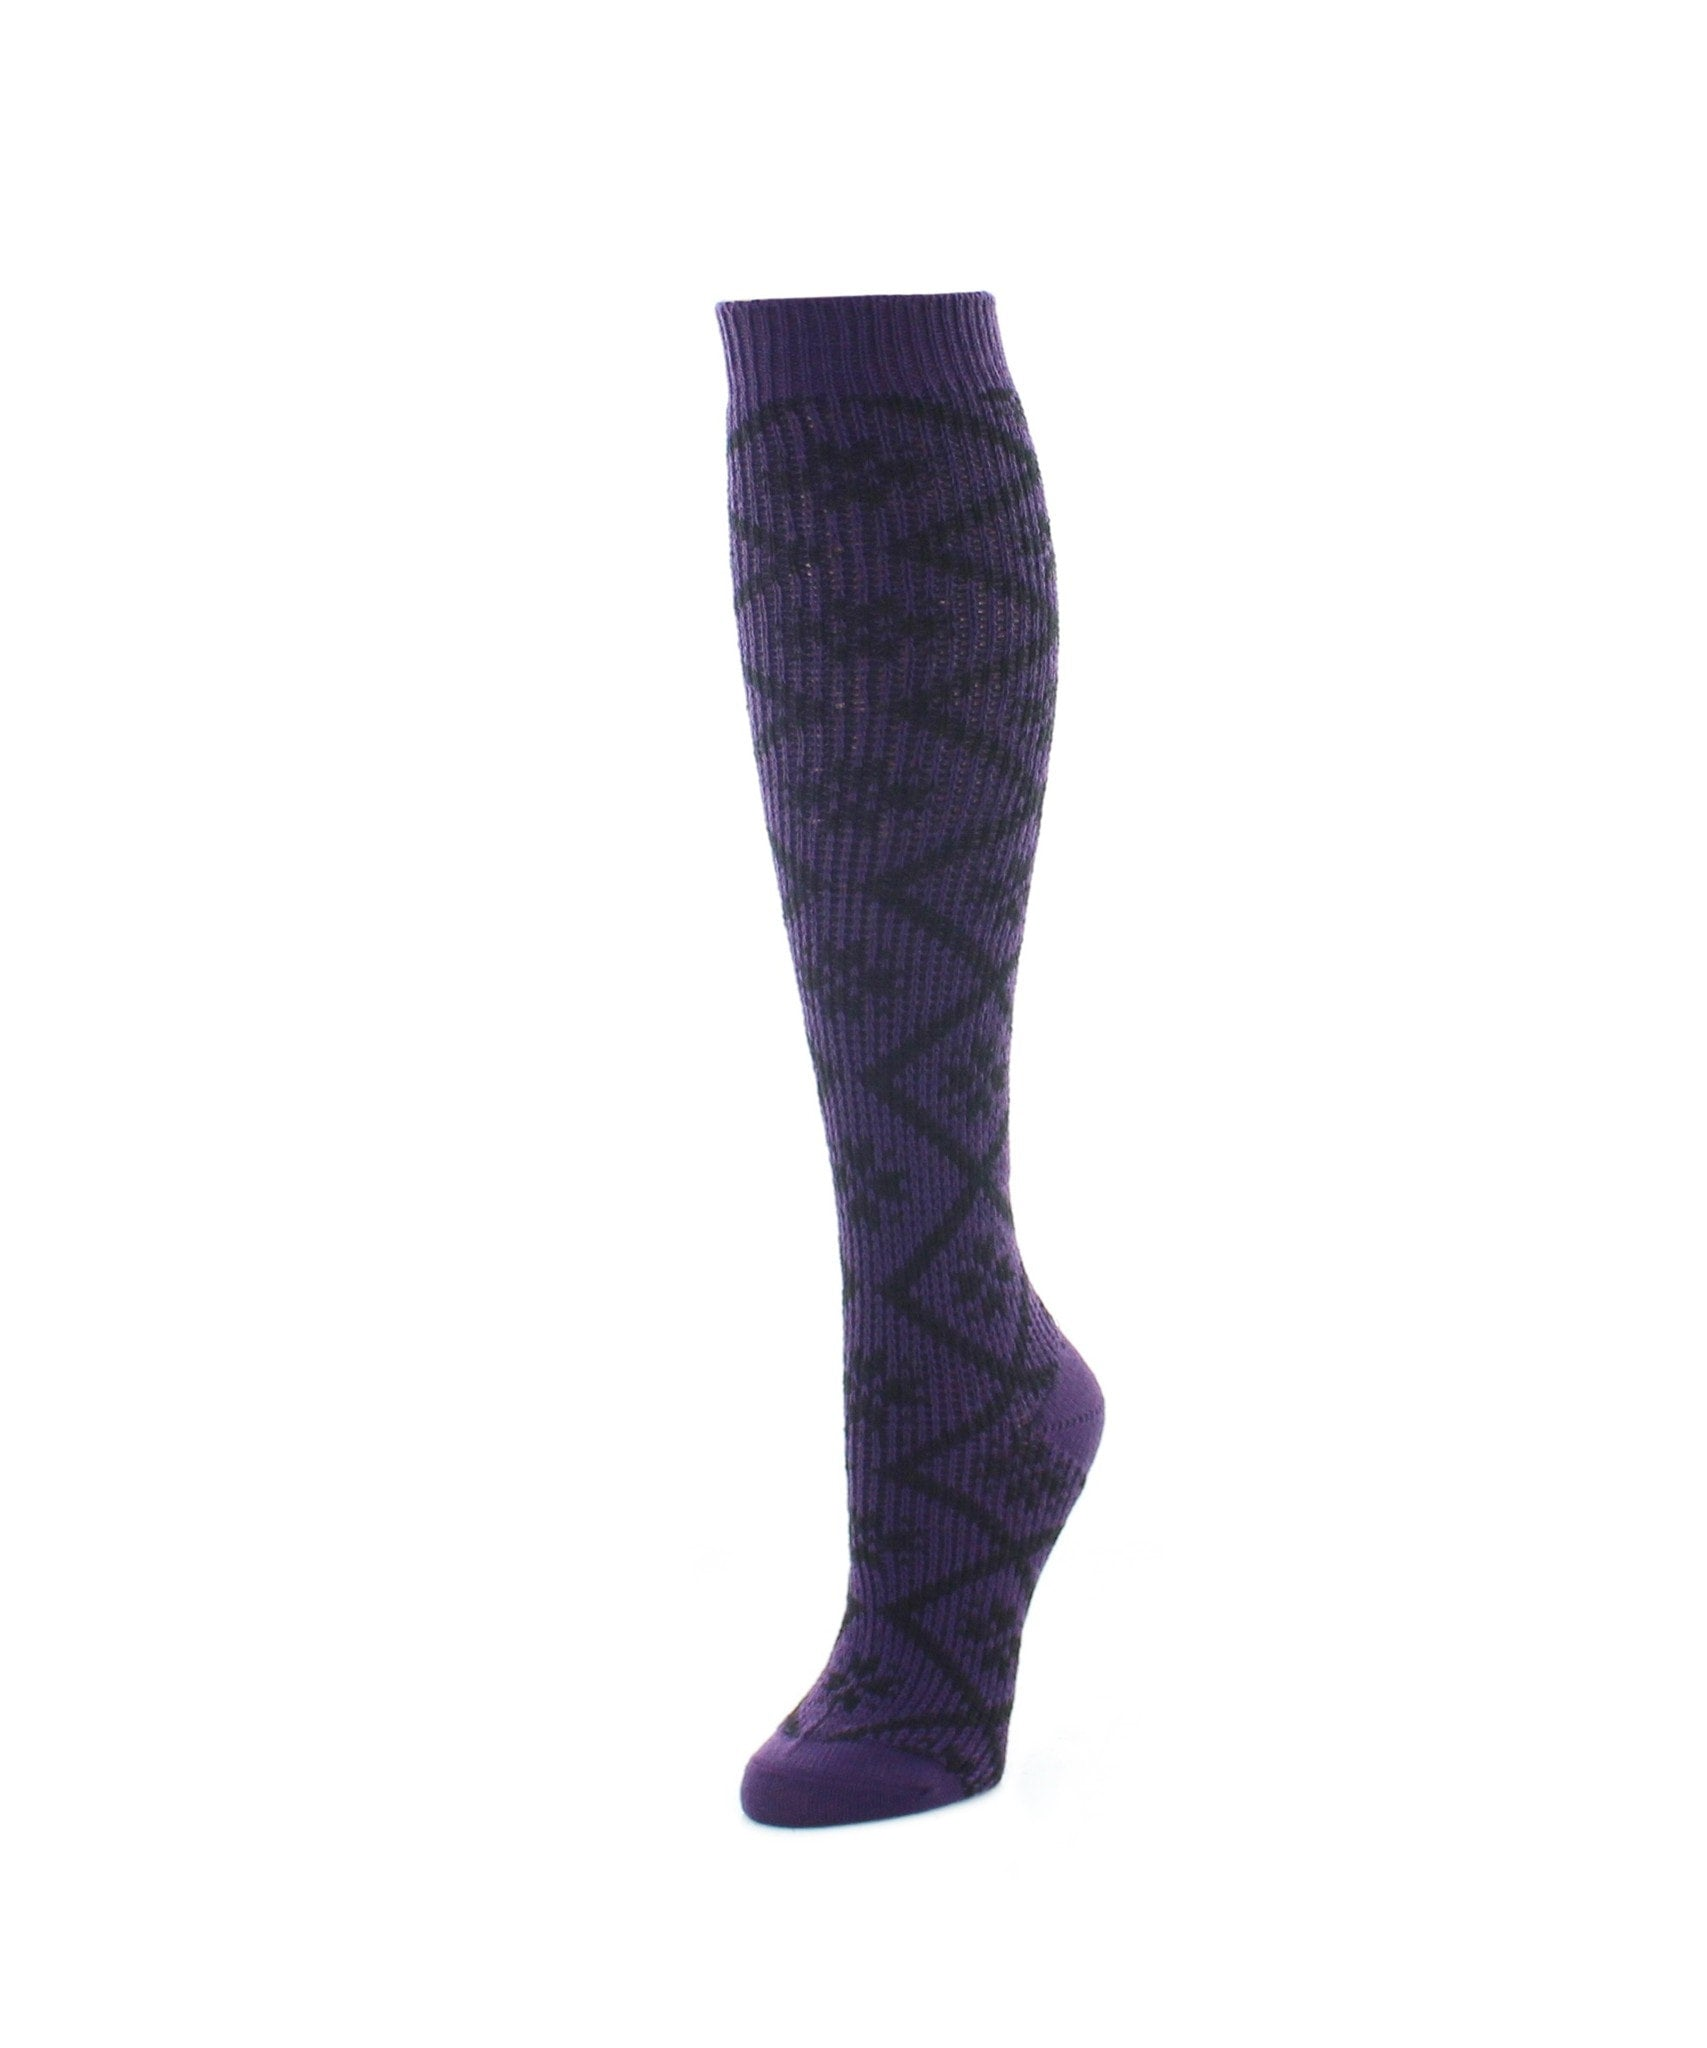 Open Crochet Knee High Women's Socks